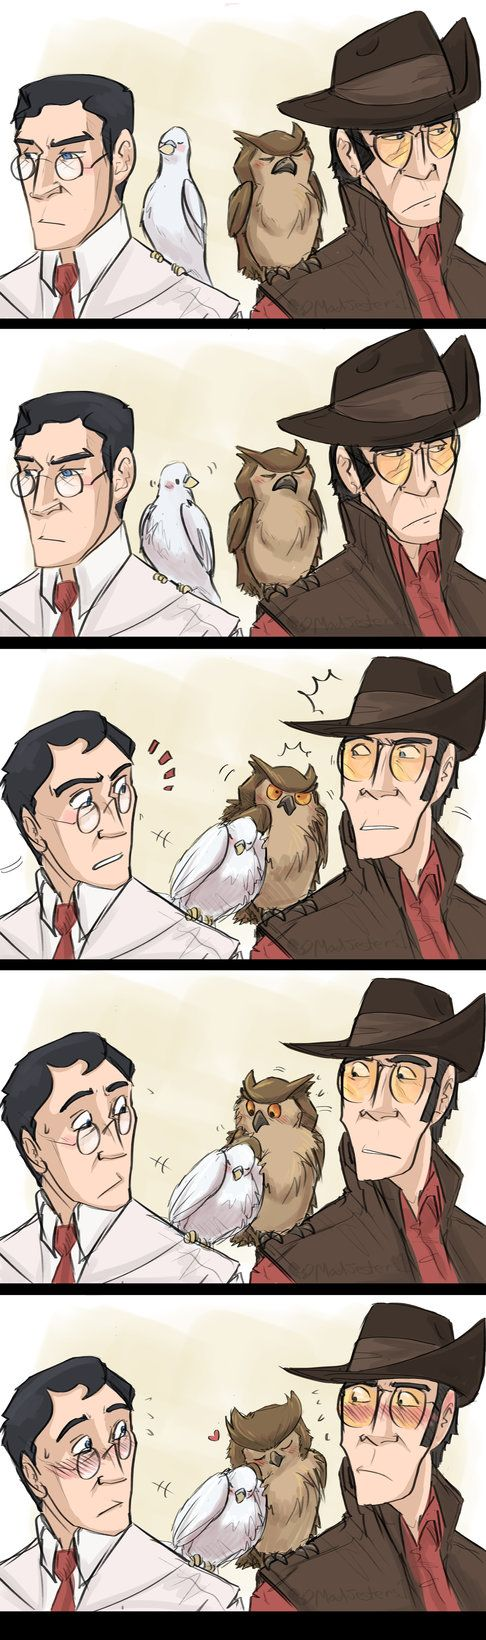 TF2- BURDS by MadJesters1 on DeviantArt